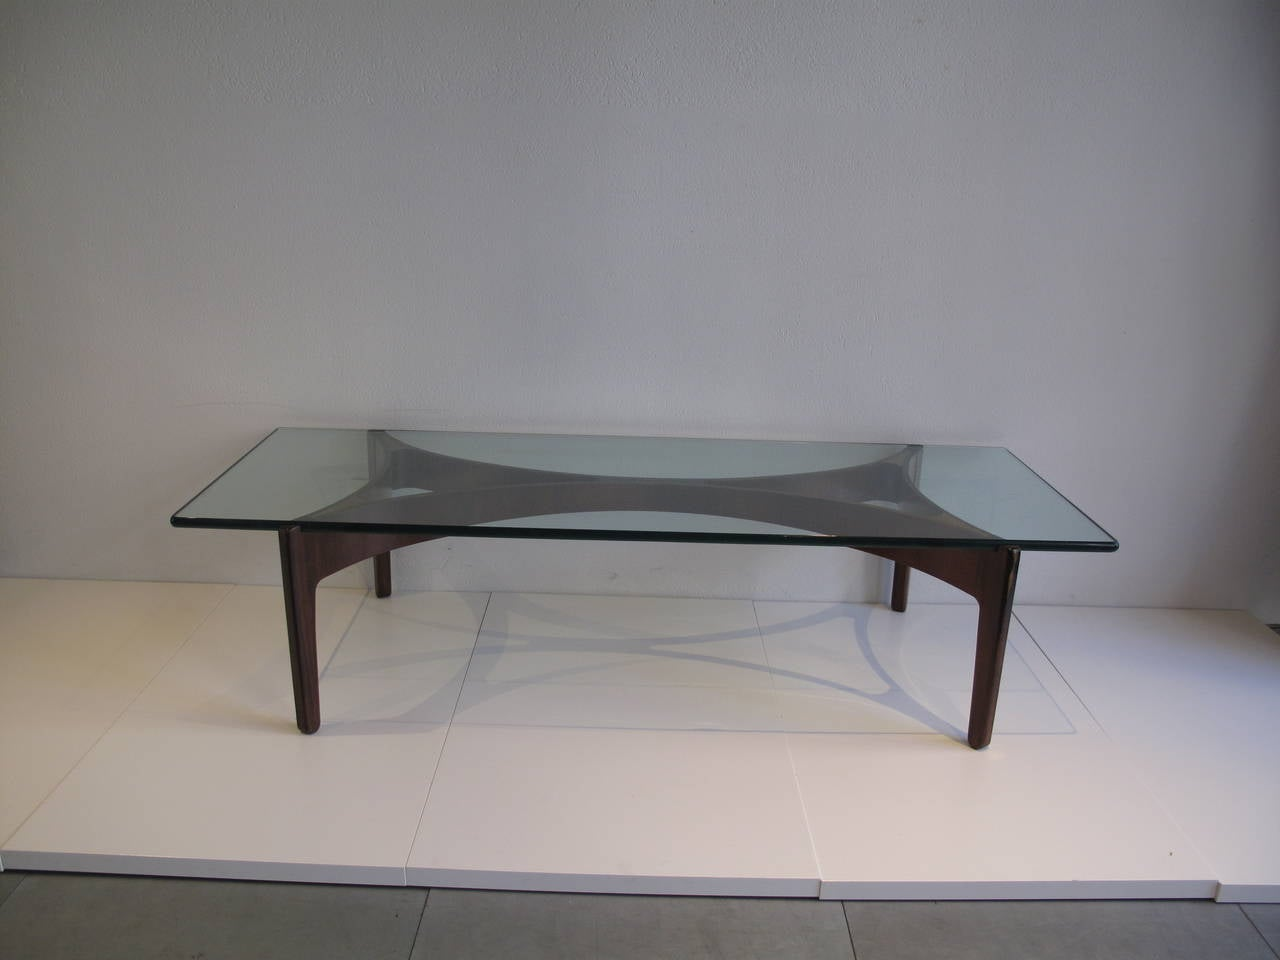 Sven Ellek R Coffee Table With A Rosewood Frame At 1stdibs